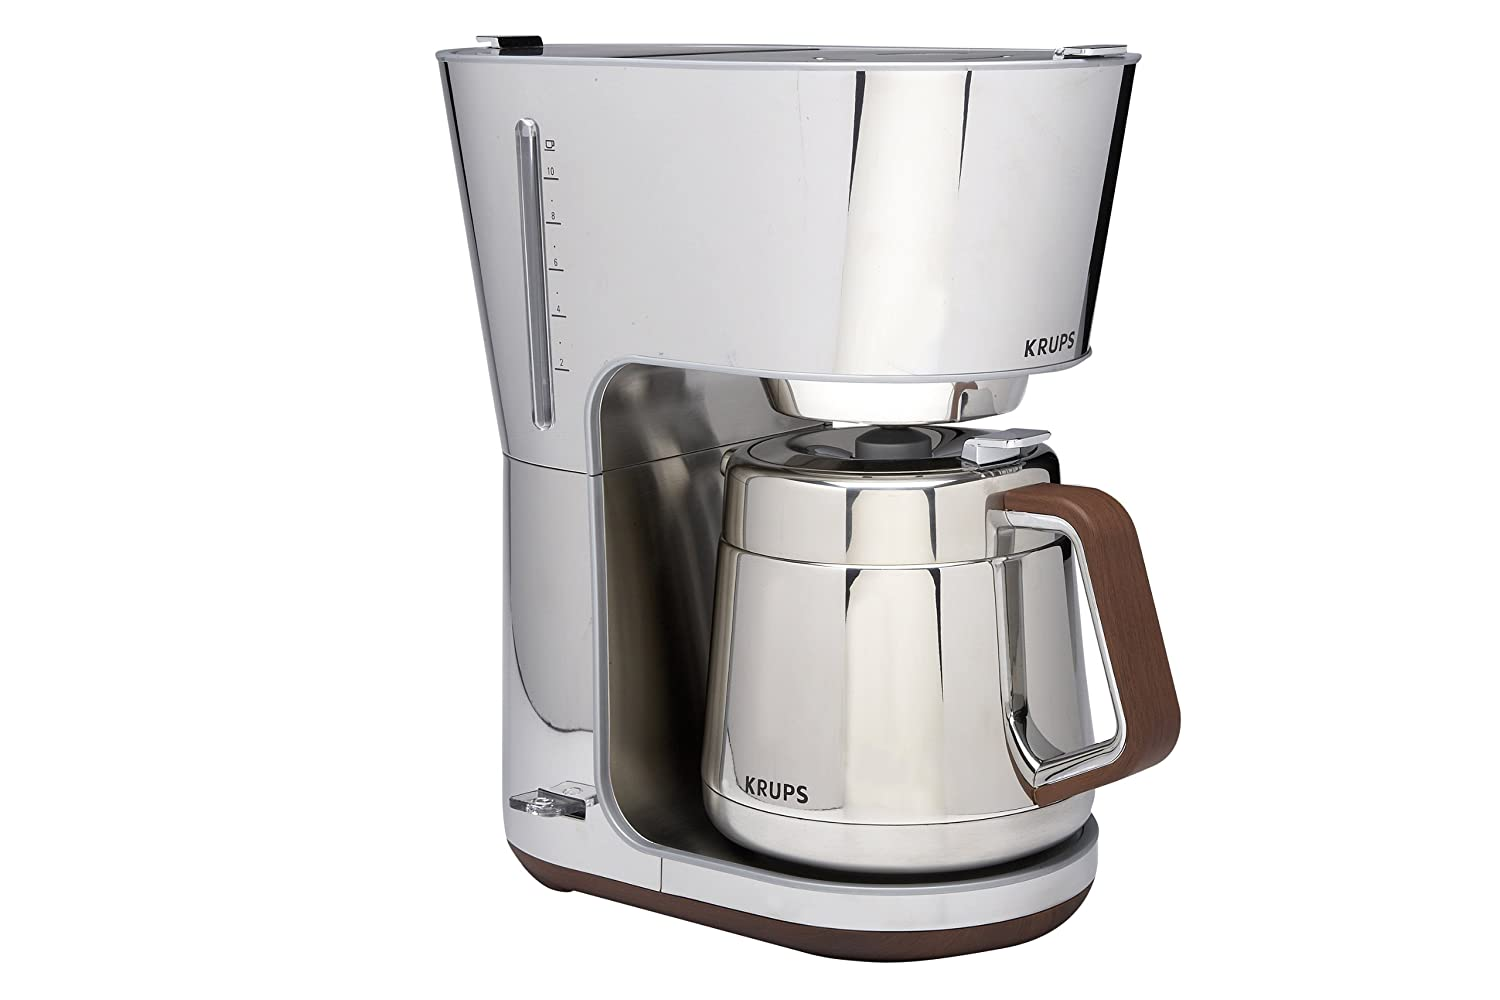 KRUPS KT600 SILVER ART COLLECTION THERMAL CARAFE COFFEE MAKER CHROME STEEL NEW!! eBay